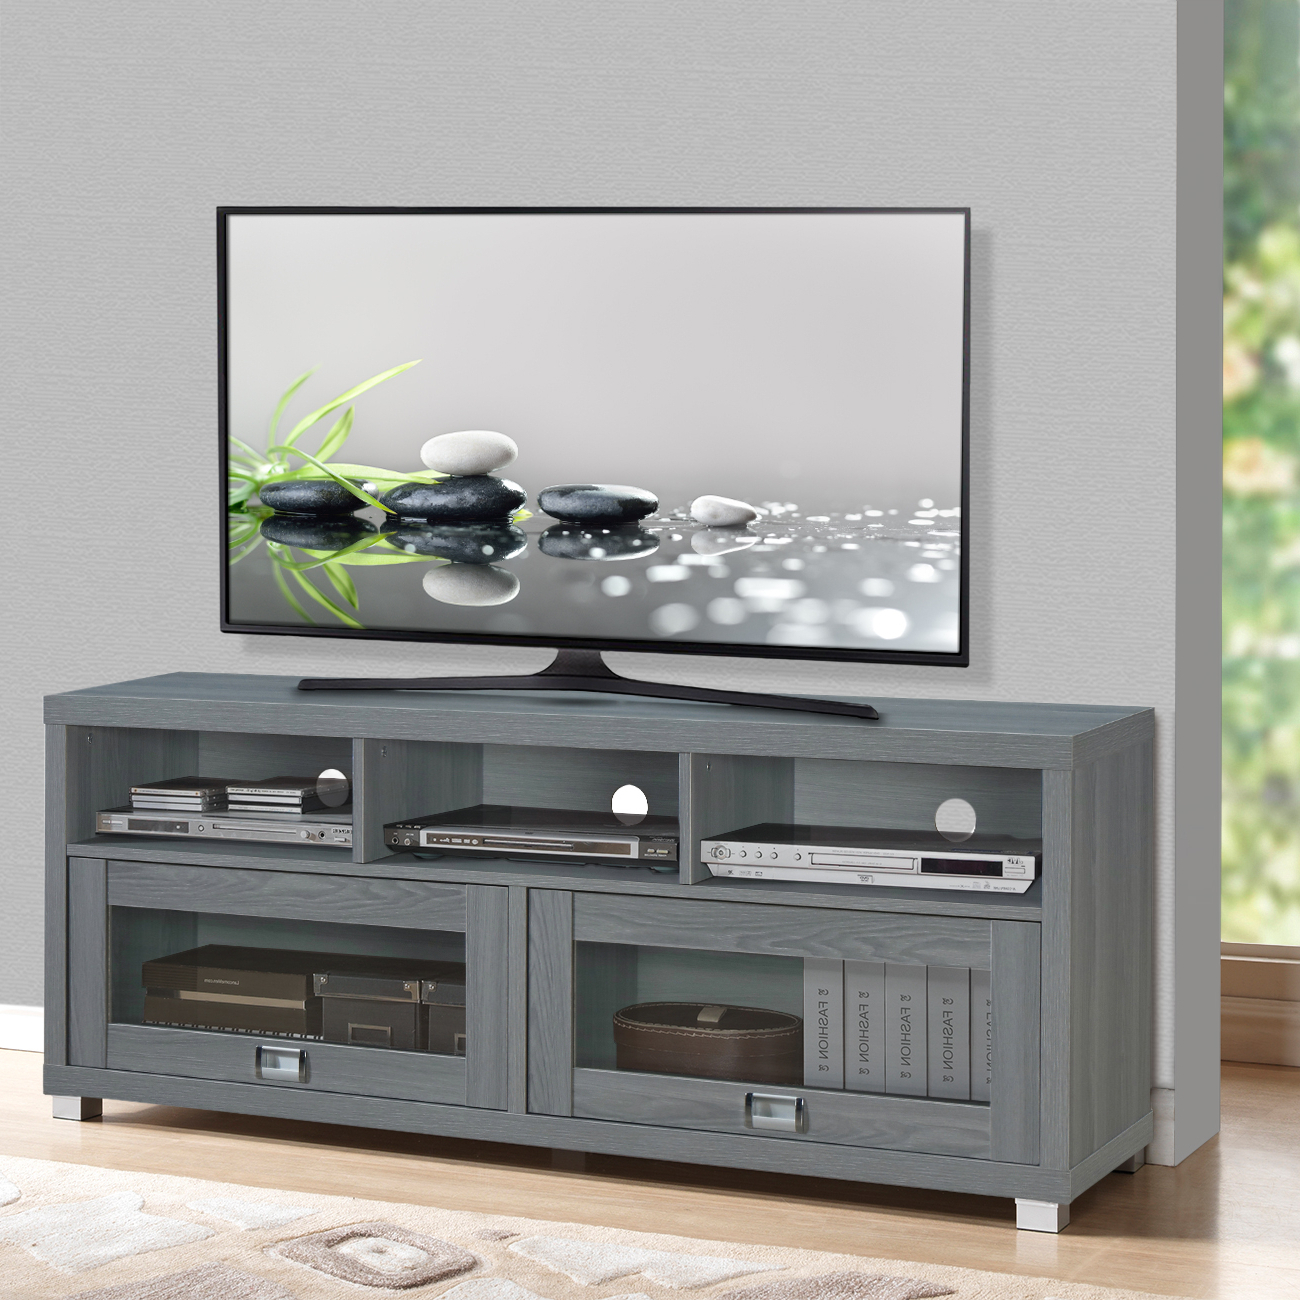 """Millen Tv Stands For Tvs Up To 60"""" With Well Known Flat Screen Tv Stand Up To 75 Inch 50 55 60 65 70 55in (View 21 of 25)"""